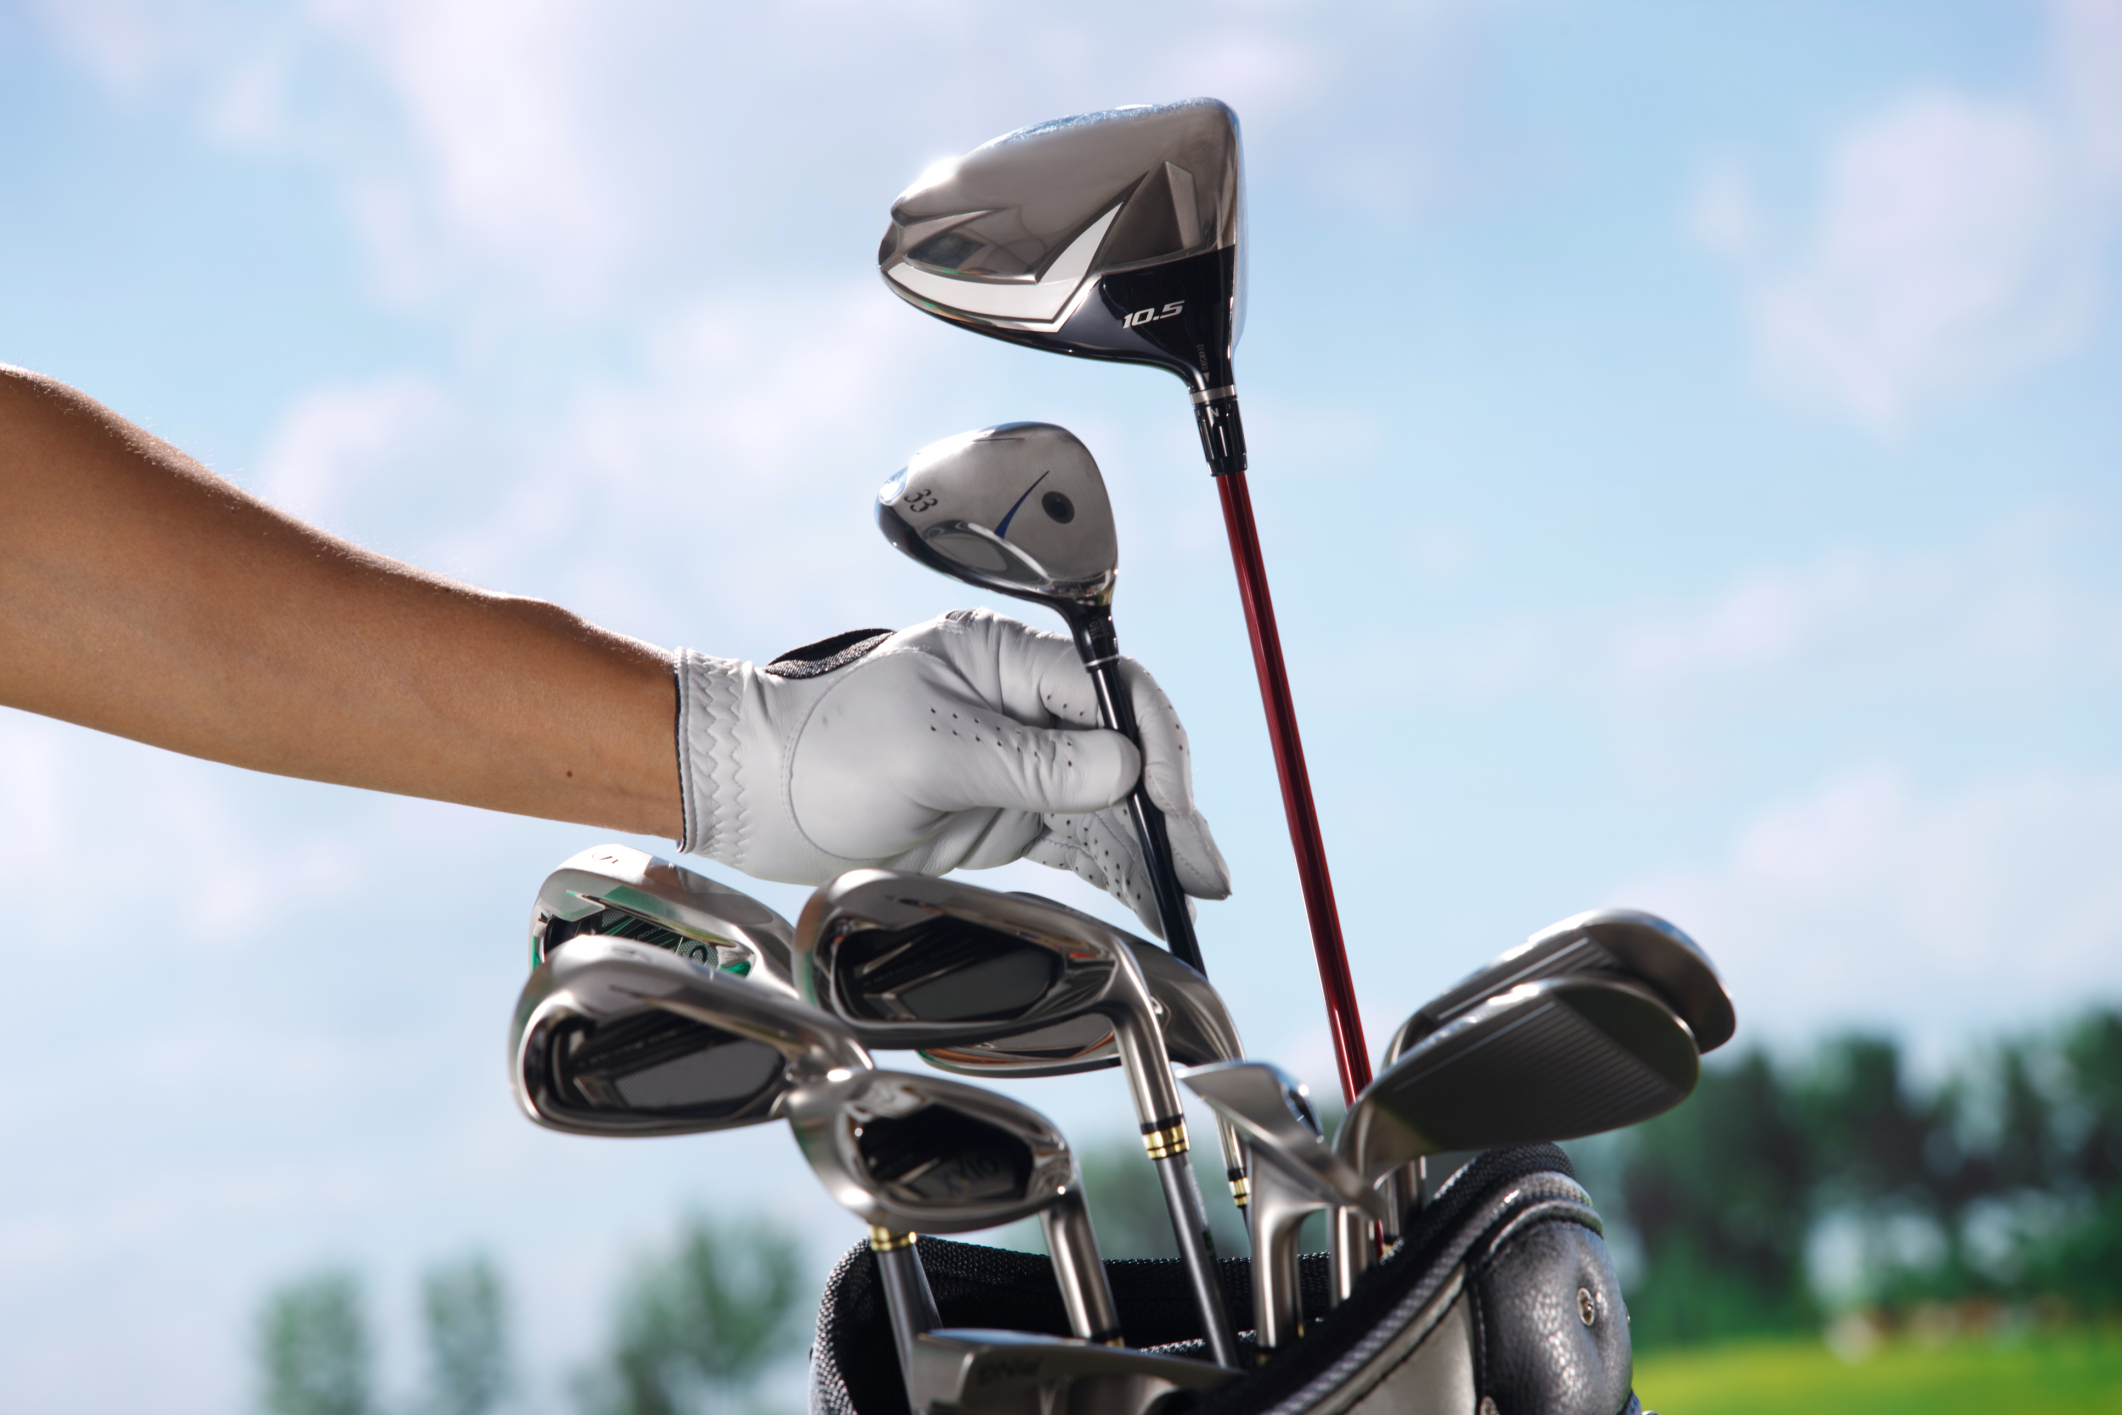 How To Identify Ping Club Counterfeits